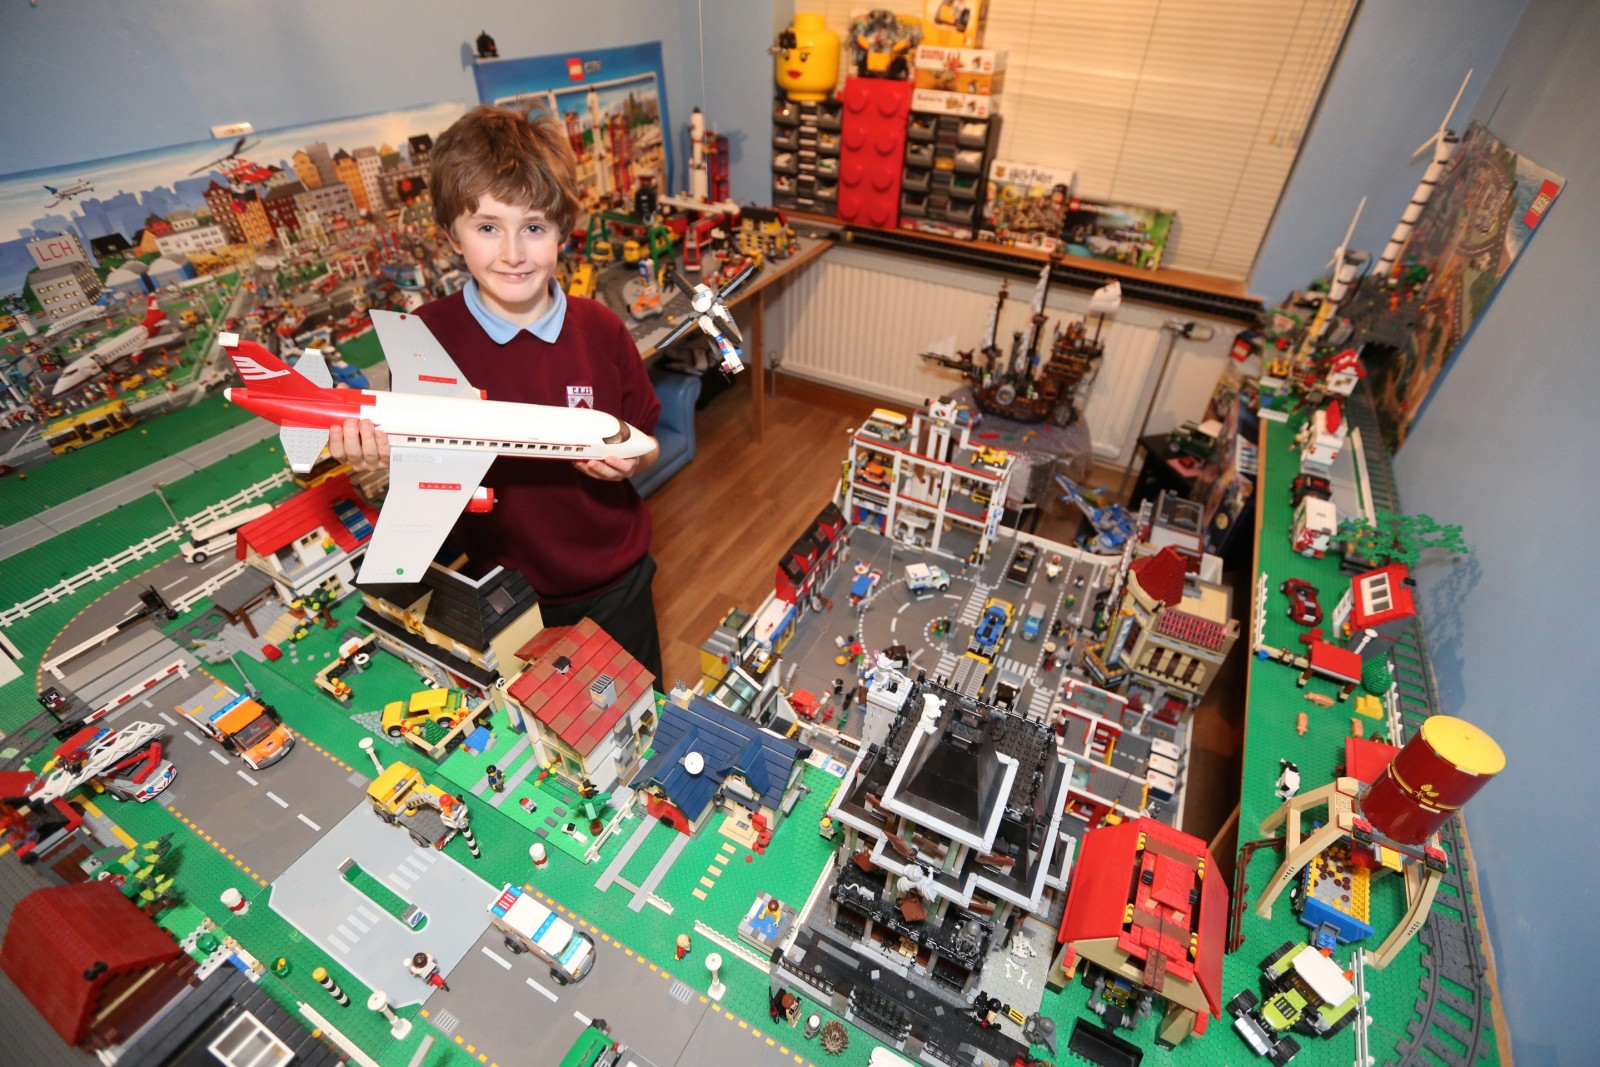 Leg Woah Father And Son Build Miniature Town To Replicate